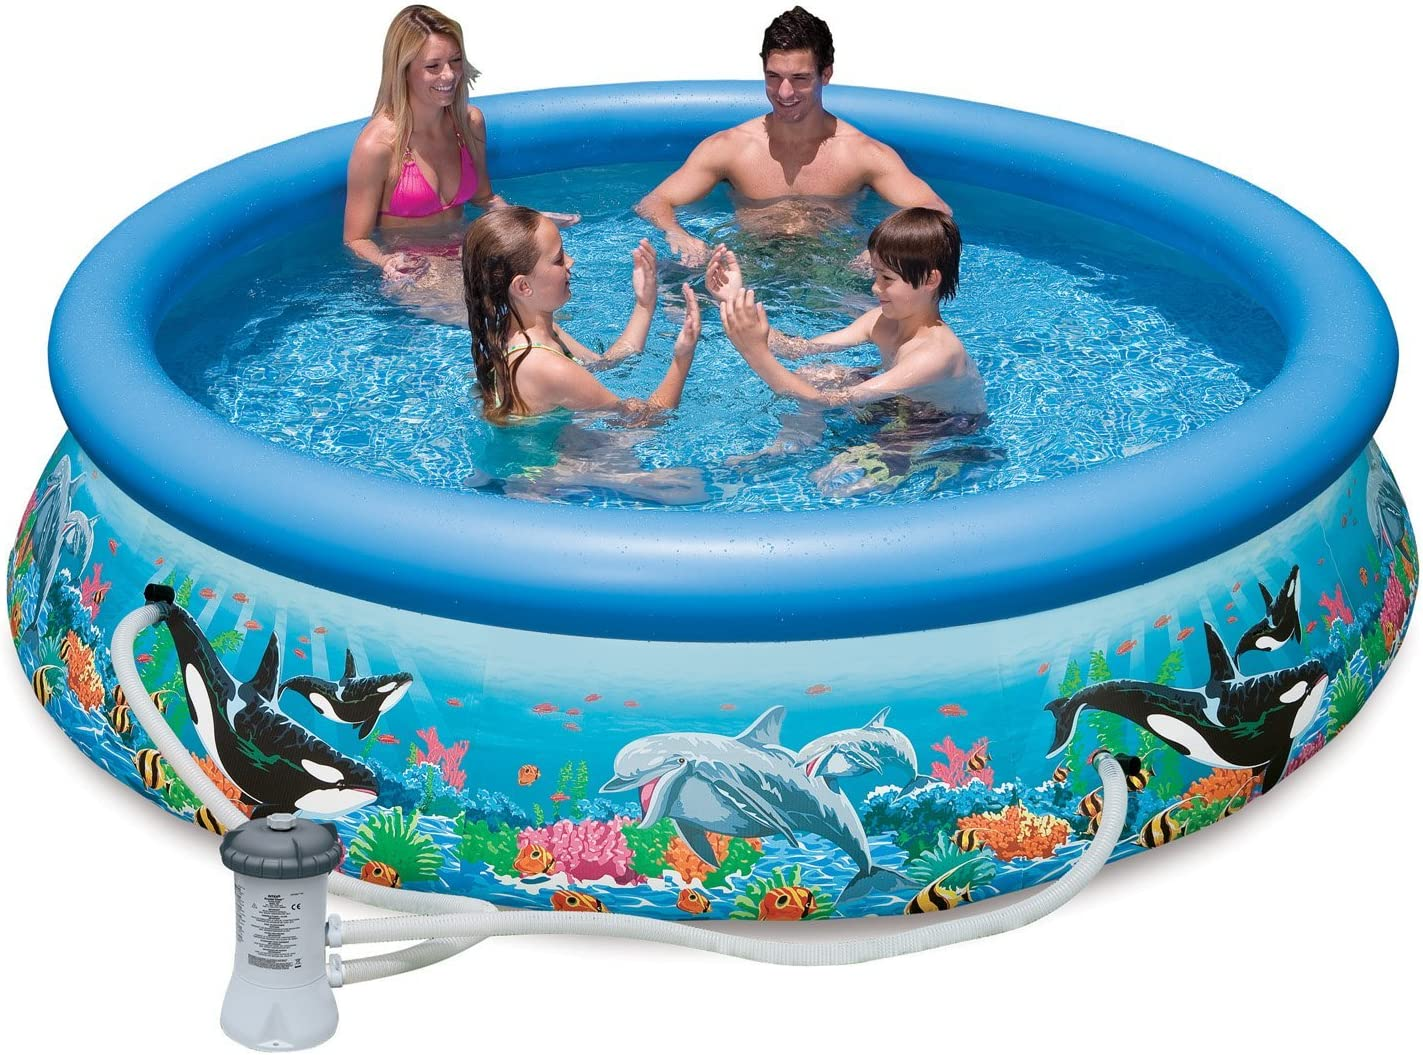 Intex Piscina Easy Océano con Bomba Filtro: Amazon.es: Jardín